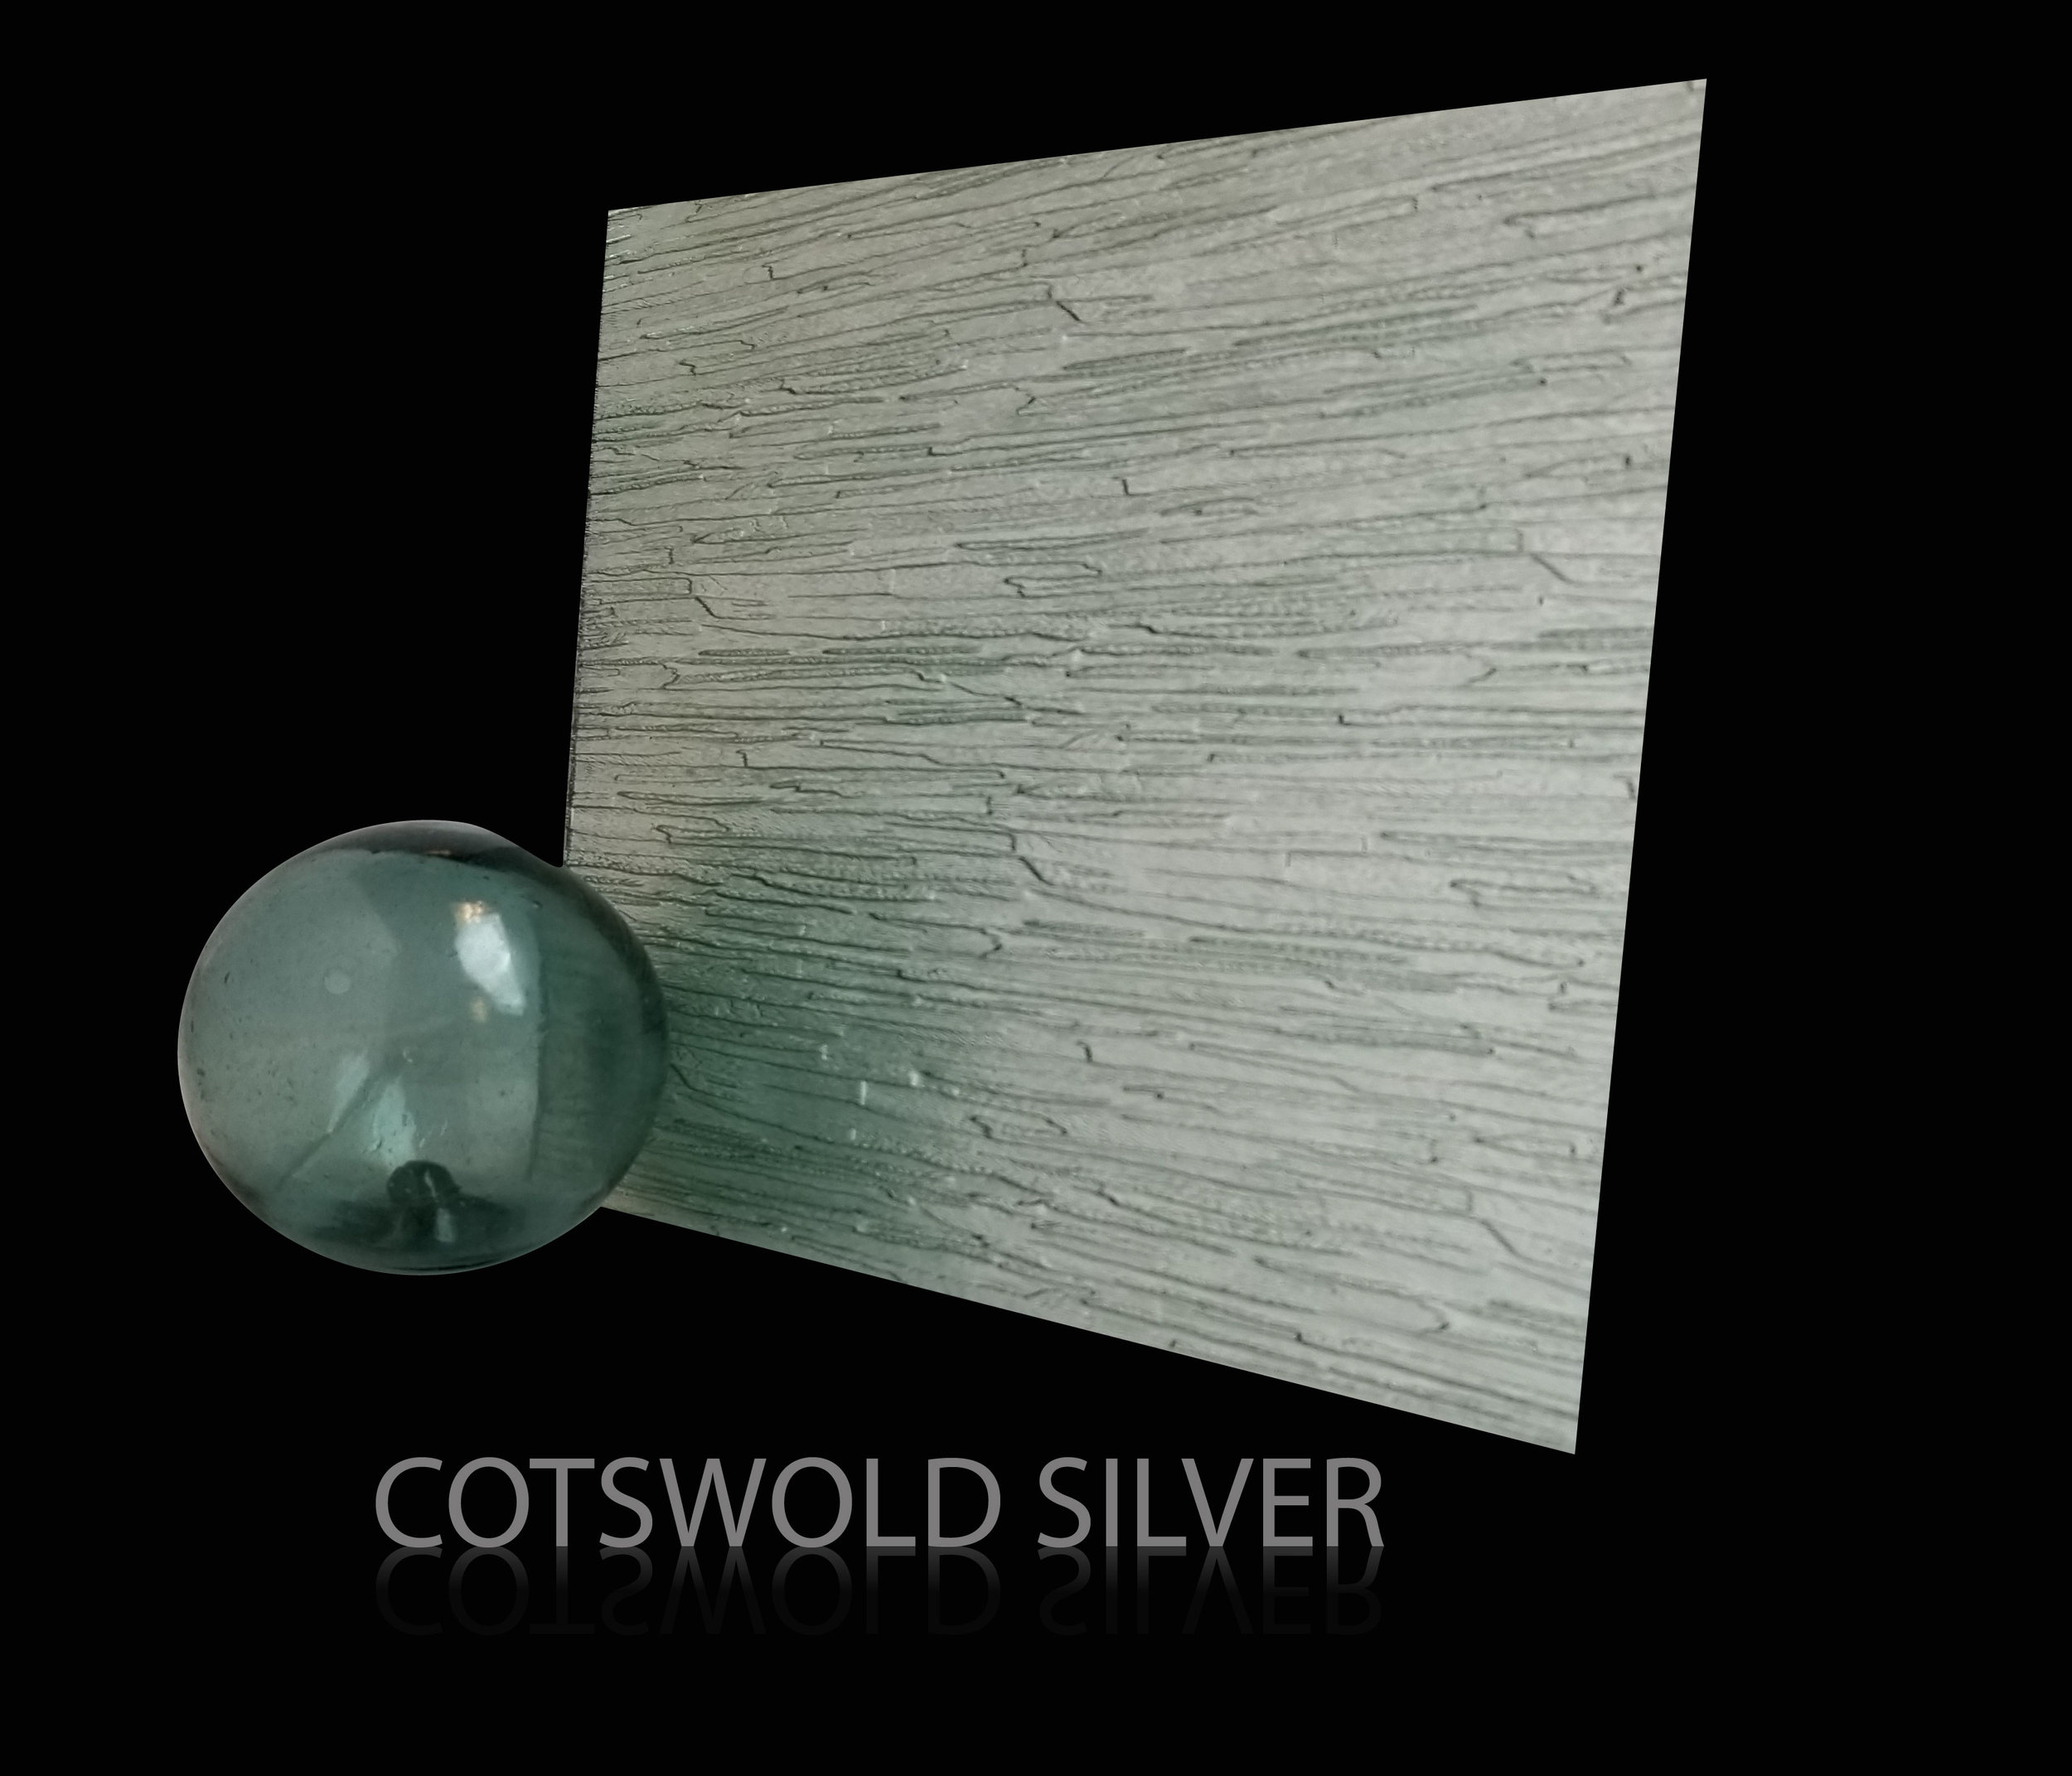 Cotswold Silver (Horizontal).jpg